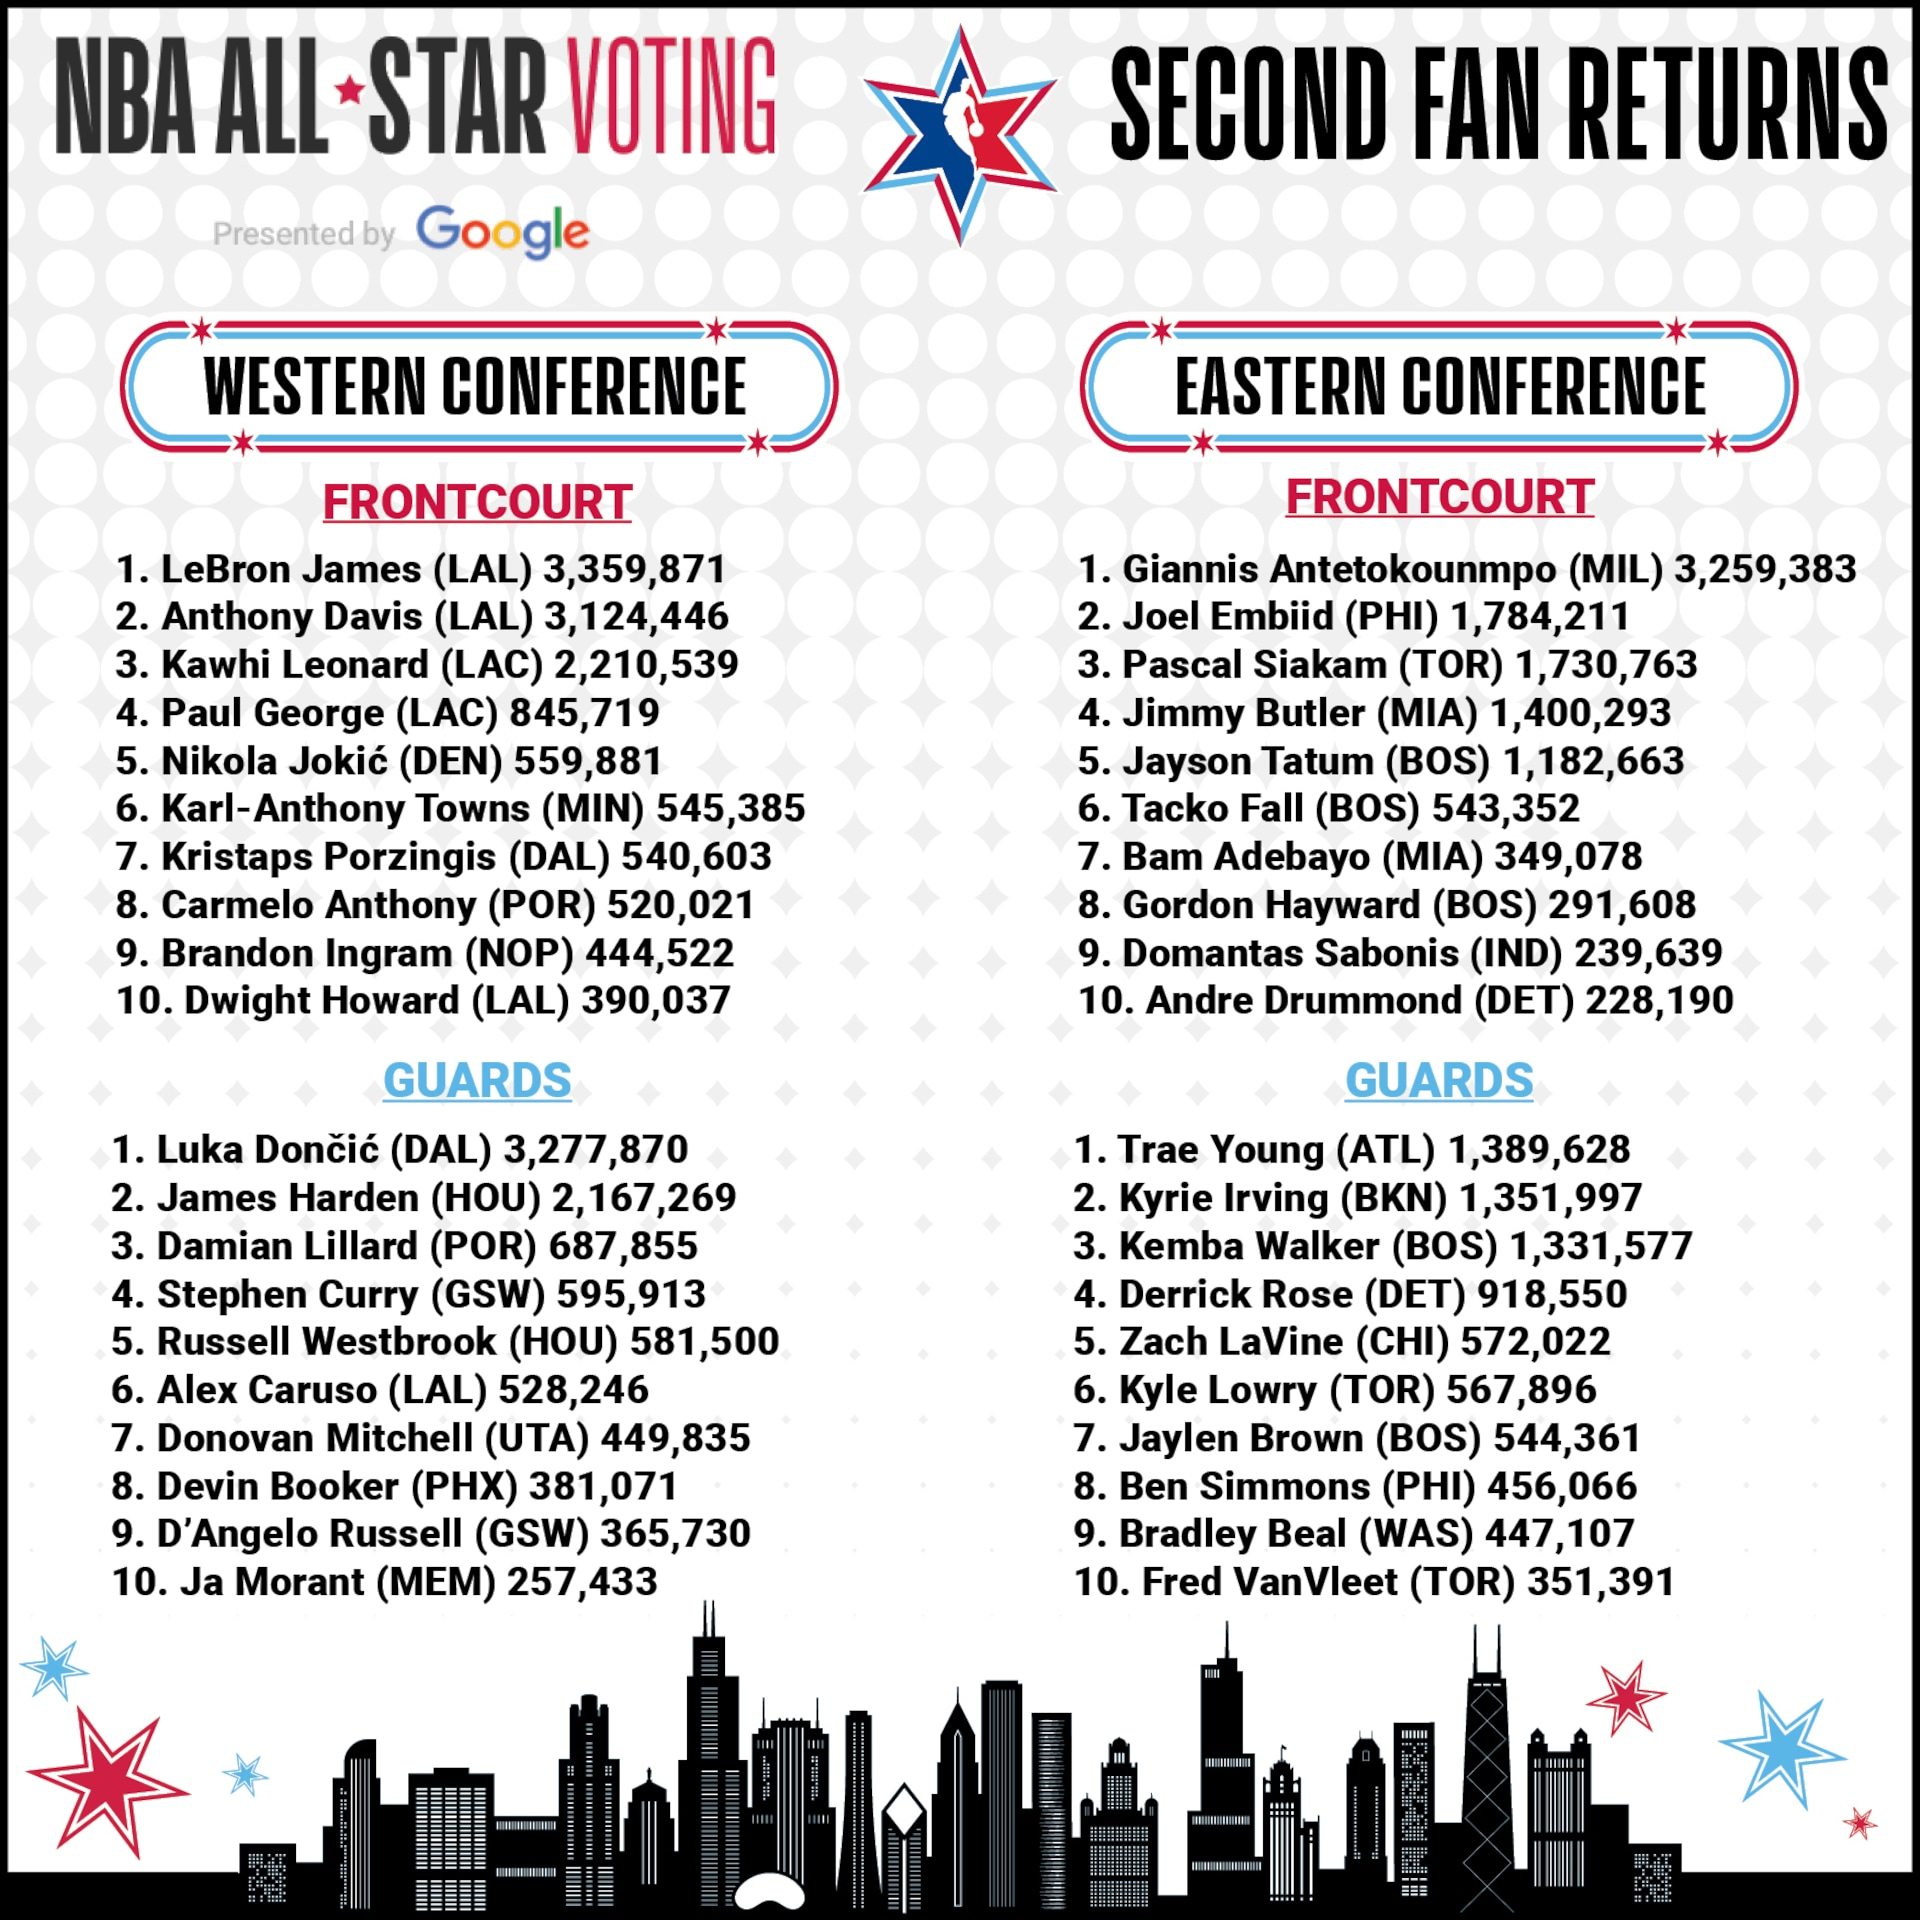 Lakers' James takes overall lead in second fan returns of NBA All-Star Voting presented by Google